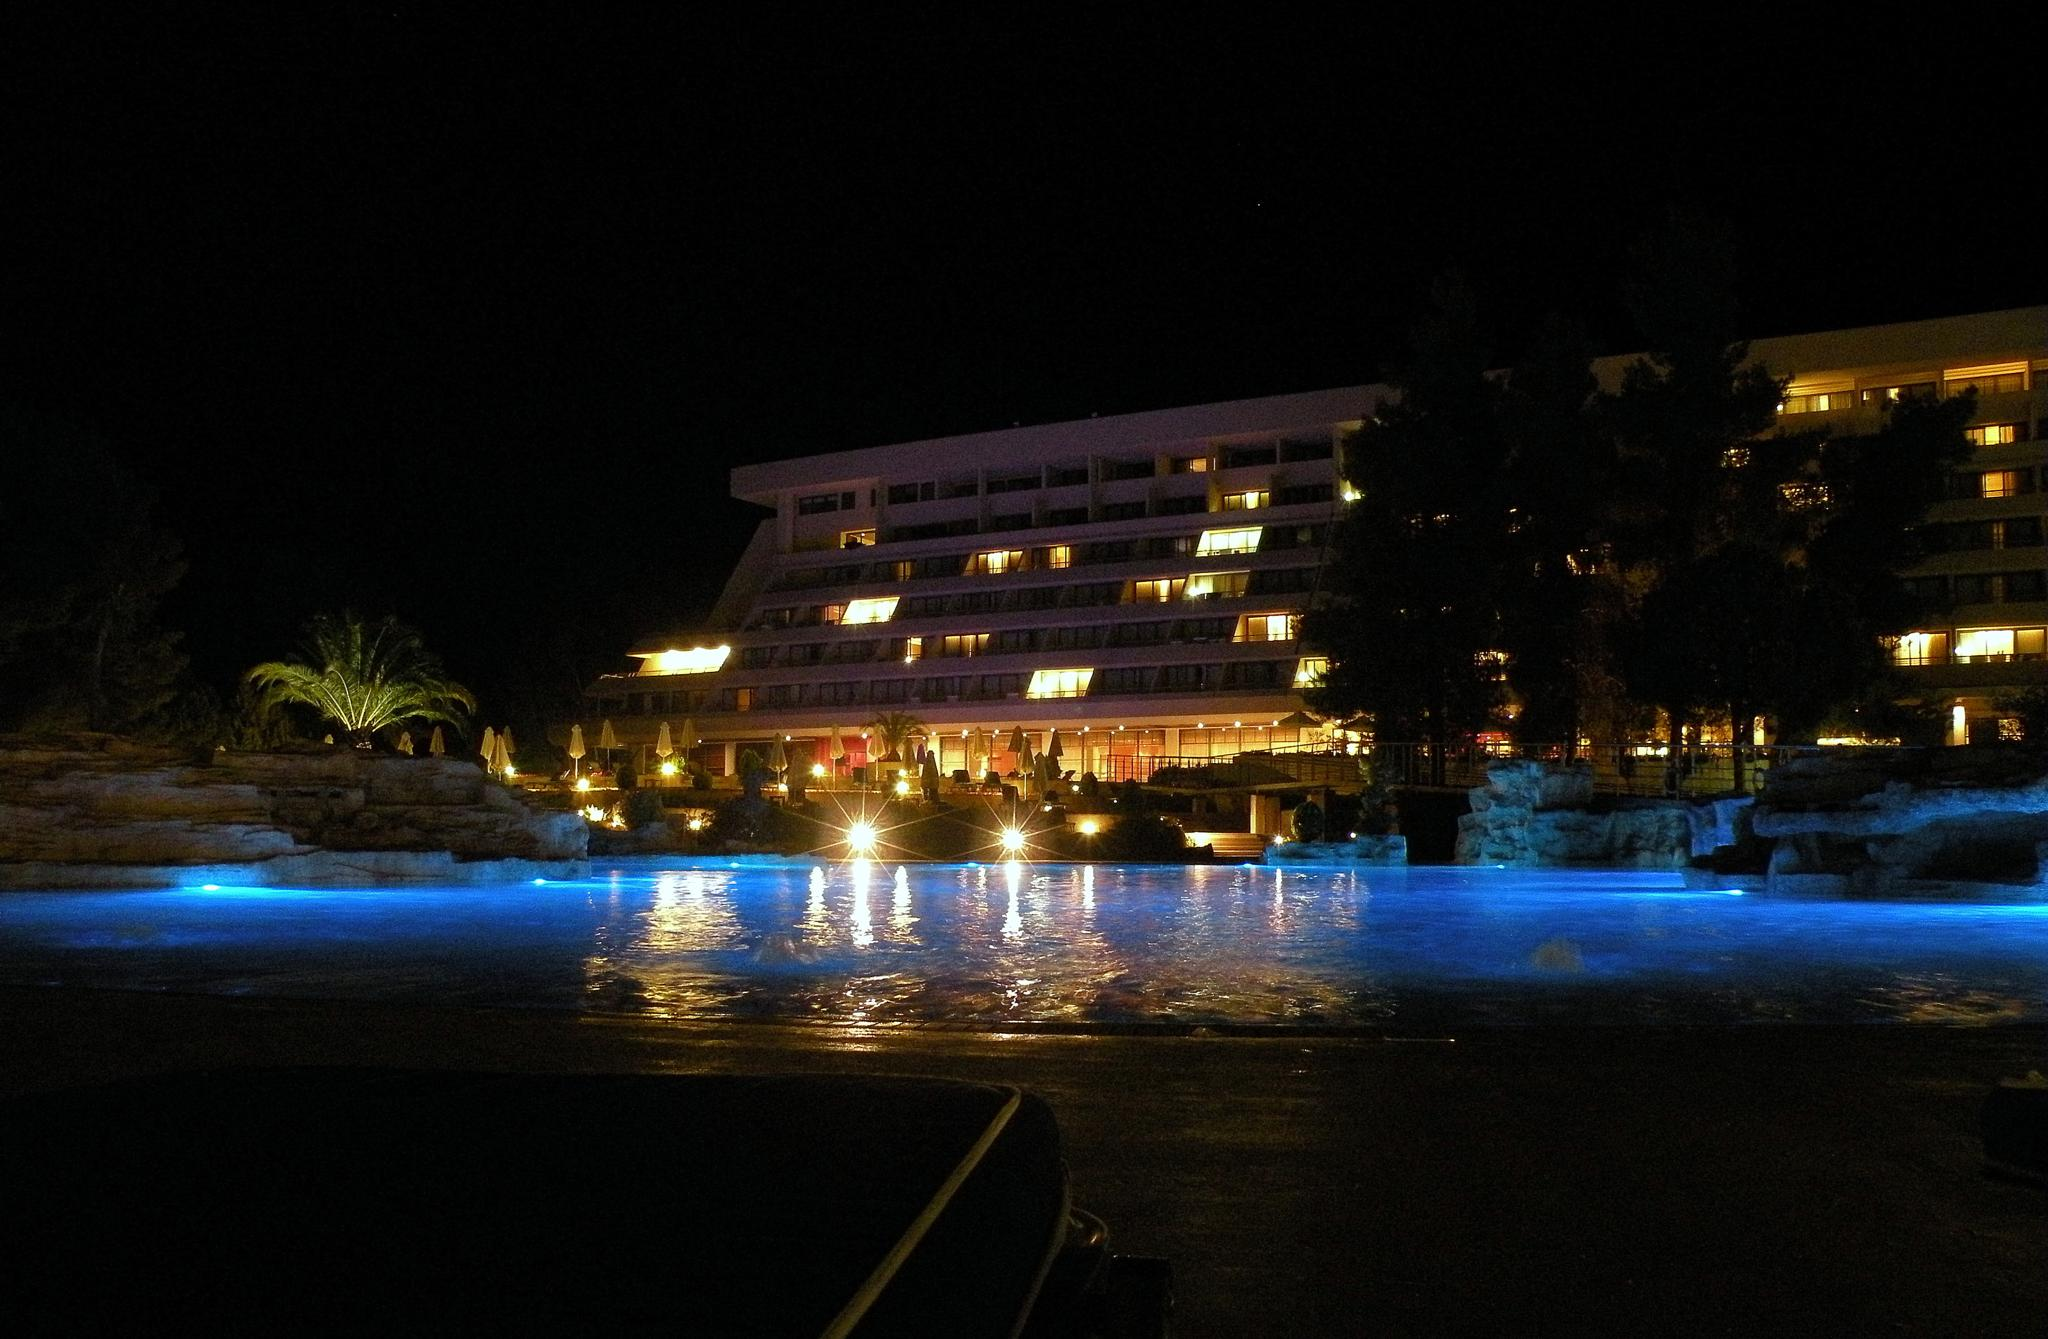 Pool and hotel by night by Costin0509